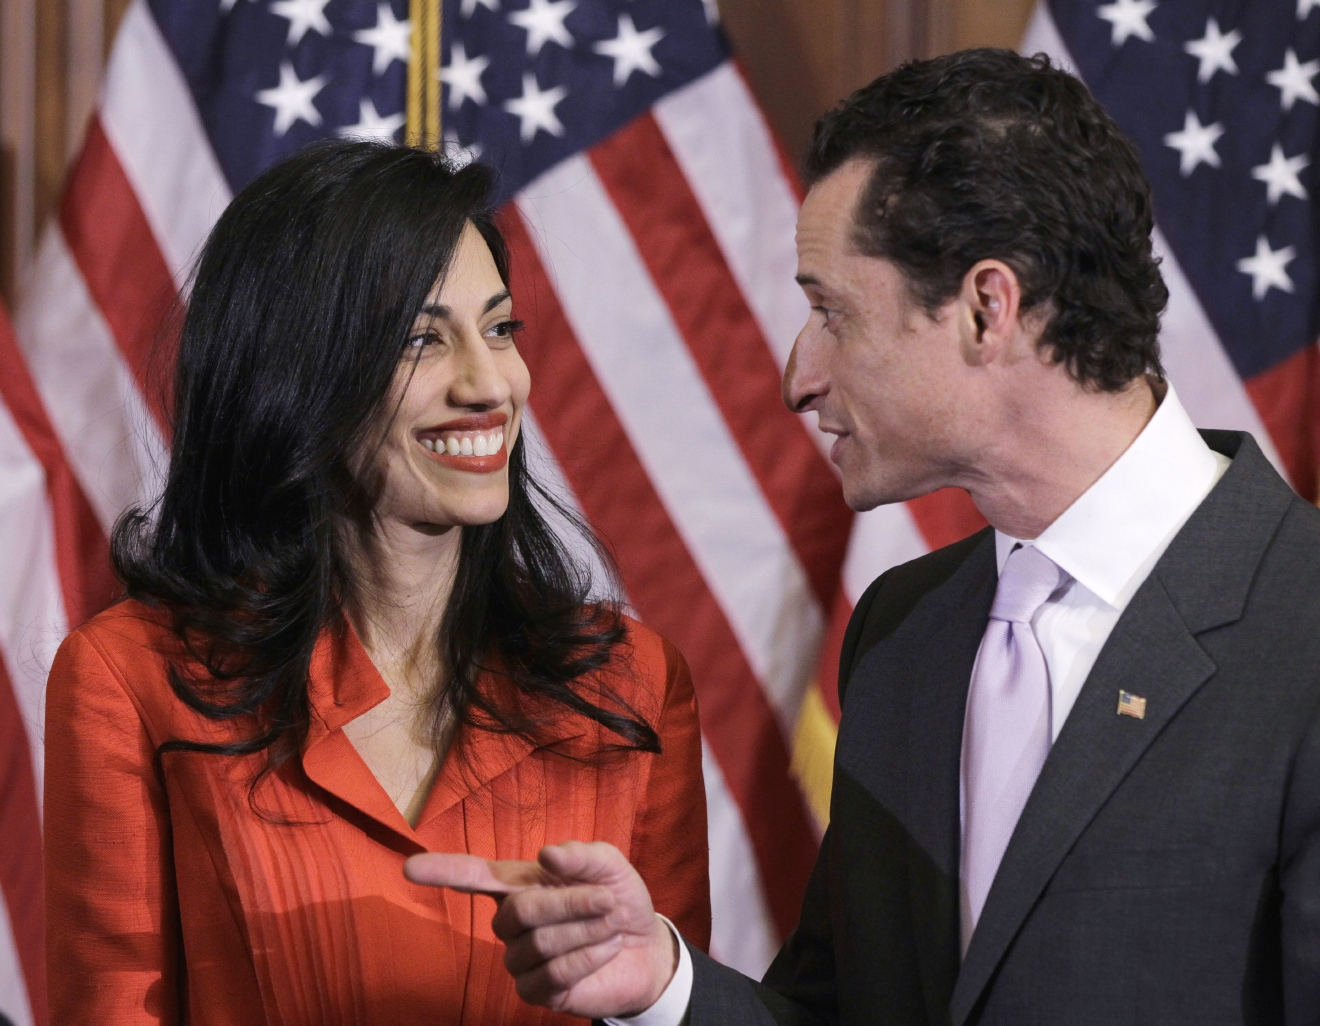 In this photo taken Jan. 5, 2011, then-New York Rep. Anthony Weiner and his wife, Huma Abedin, an aide to then-Secretary of State Hillary Clinton, are pictured after a ceremonial swearing in of the 112th Congress on Capitol Hill in Washington.  (AP Photo/Charles Dharapak)